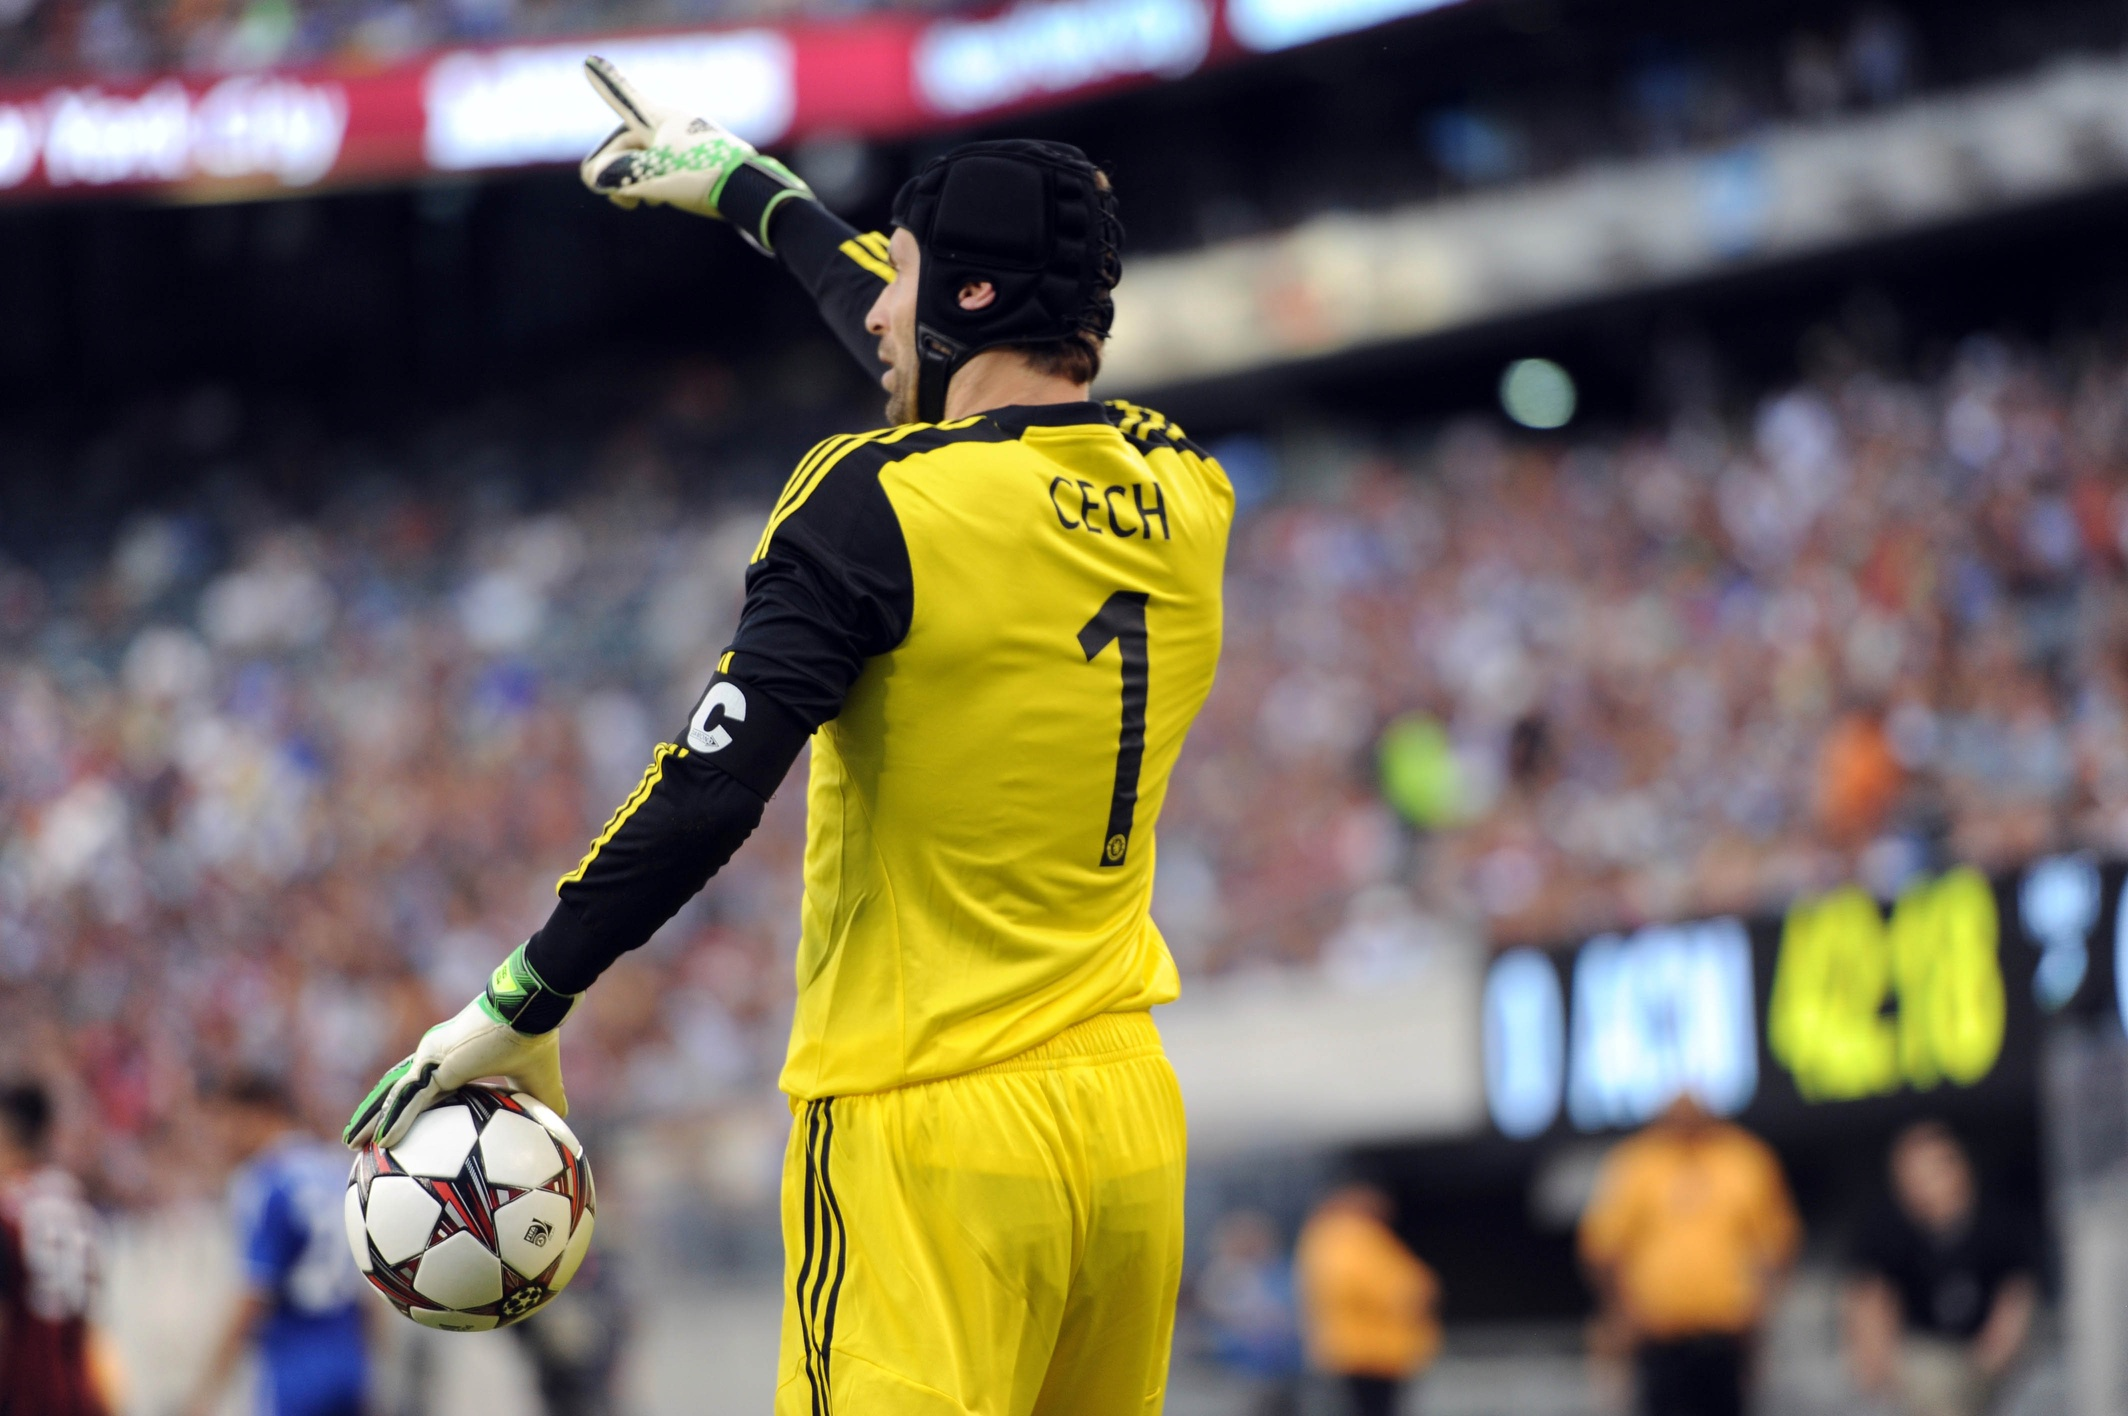 Arsenal sign Chelsea goalkeeper Petr Cech says report World